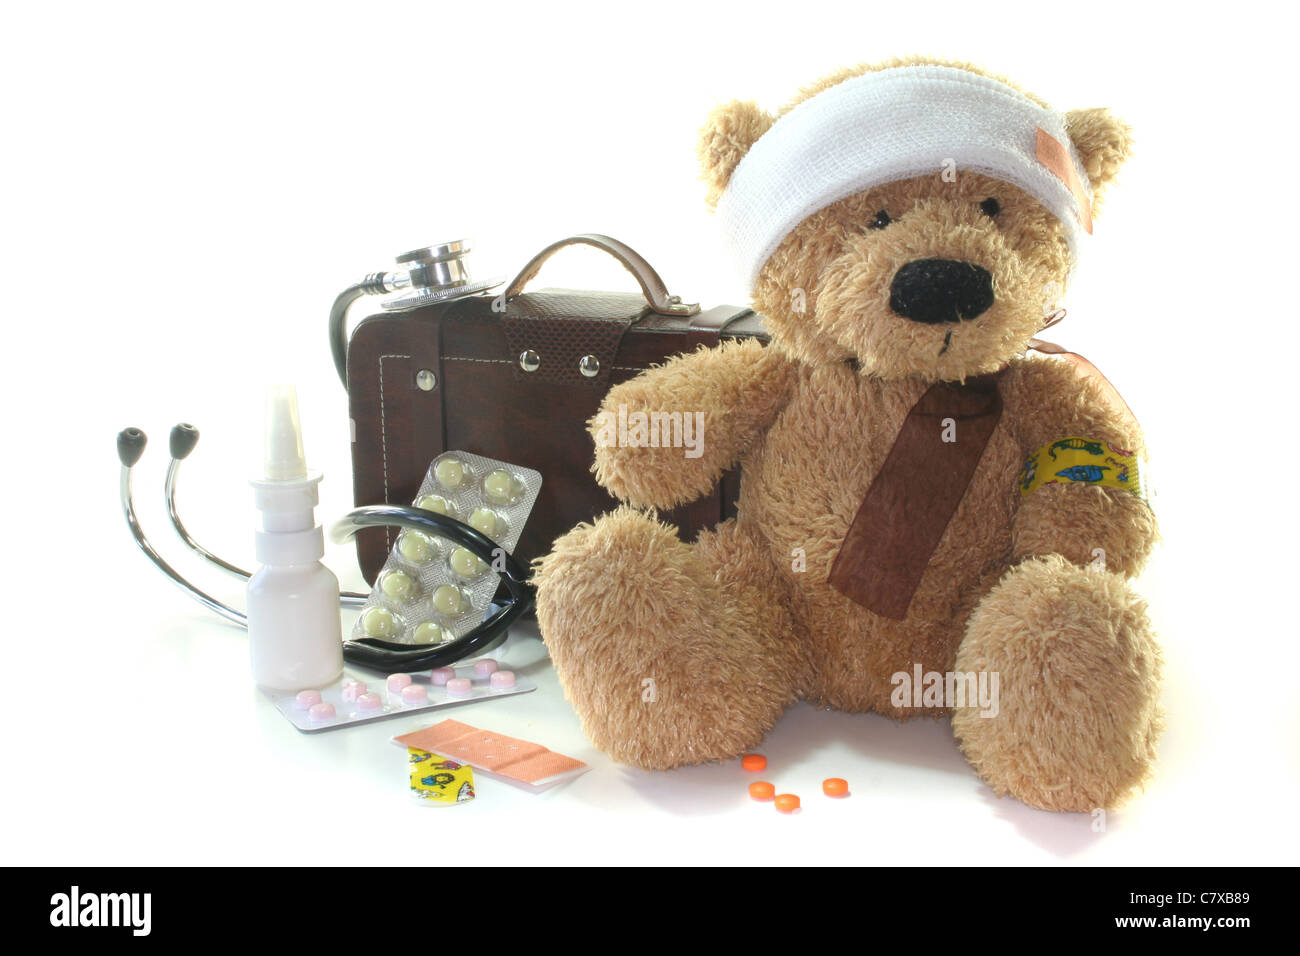 Kids first aid kit with Teddy, Bags, Stethoscope and medicines - Stock Image